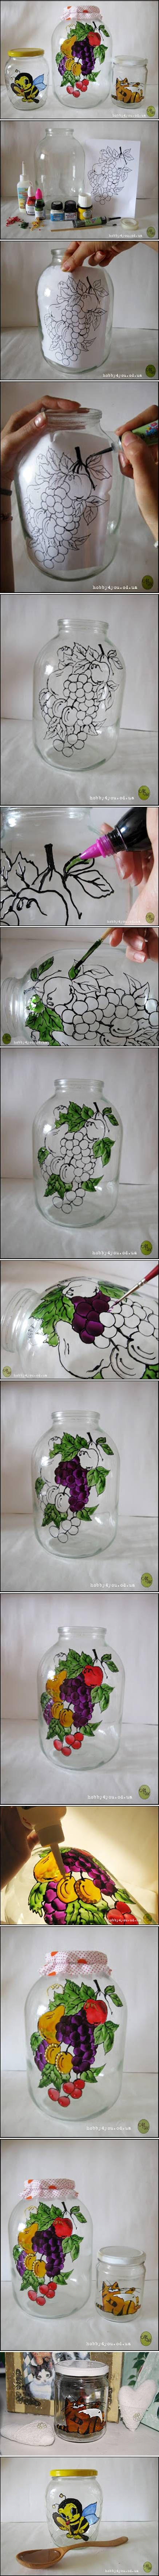 suction cup flower vase of 279 best crafty ideas images on pinterest bricolage clay pot within diy jar art diy crafts craft ideas easy crafts diy ideas diy idea diy home easy diy diy art for the home crafty decor home ideas diy decorations glass paint